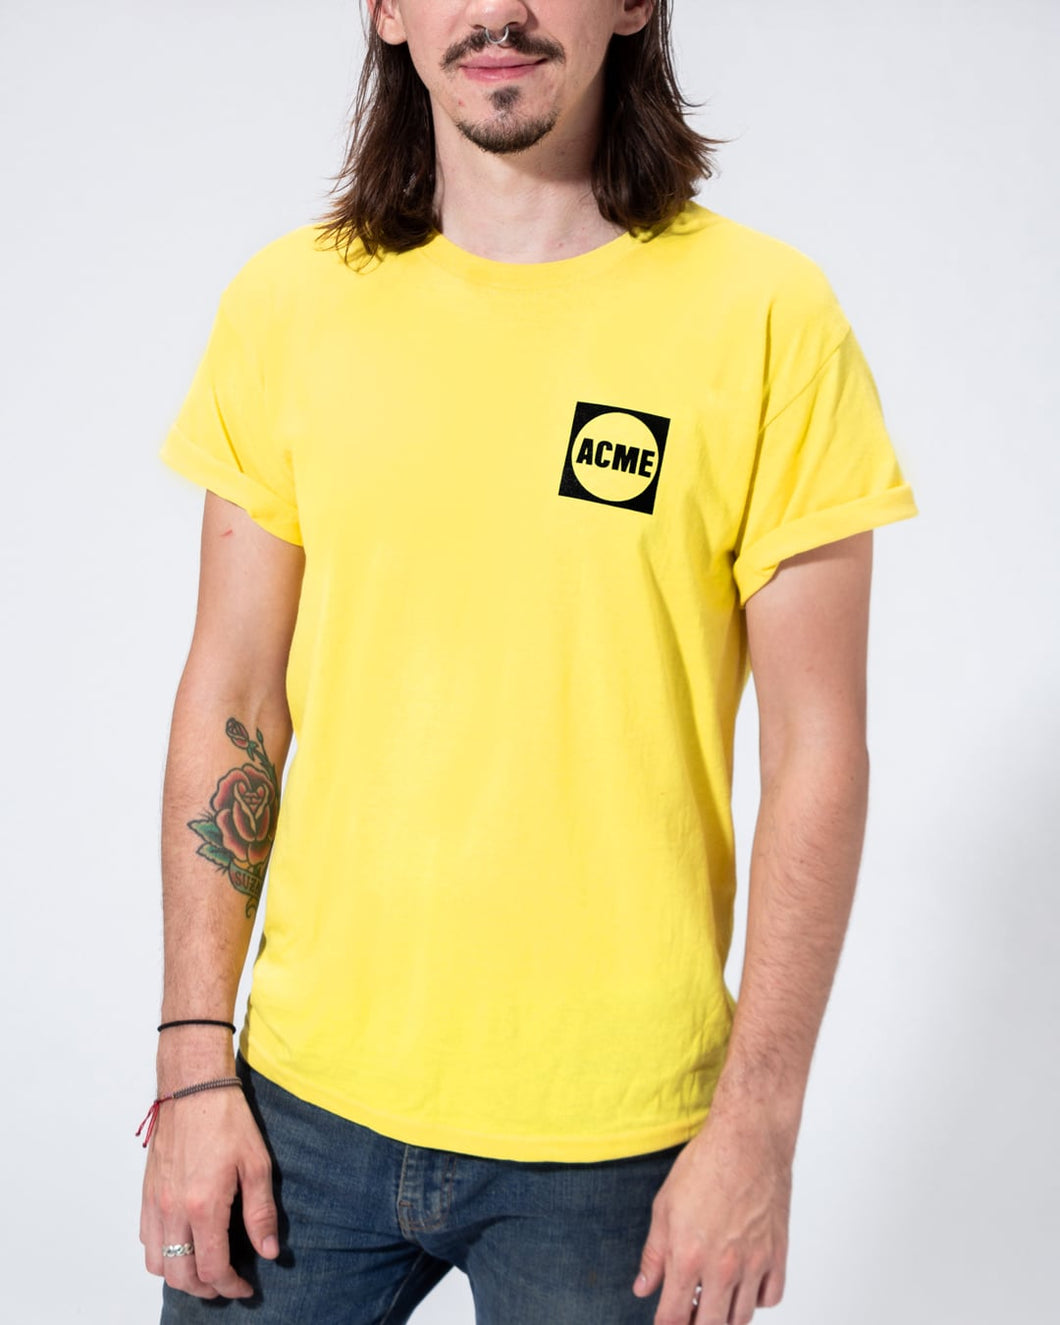 ACME Logo T-shirt, Yellow